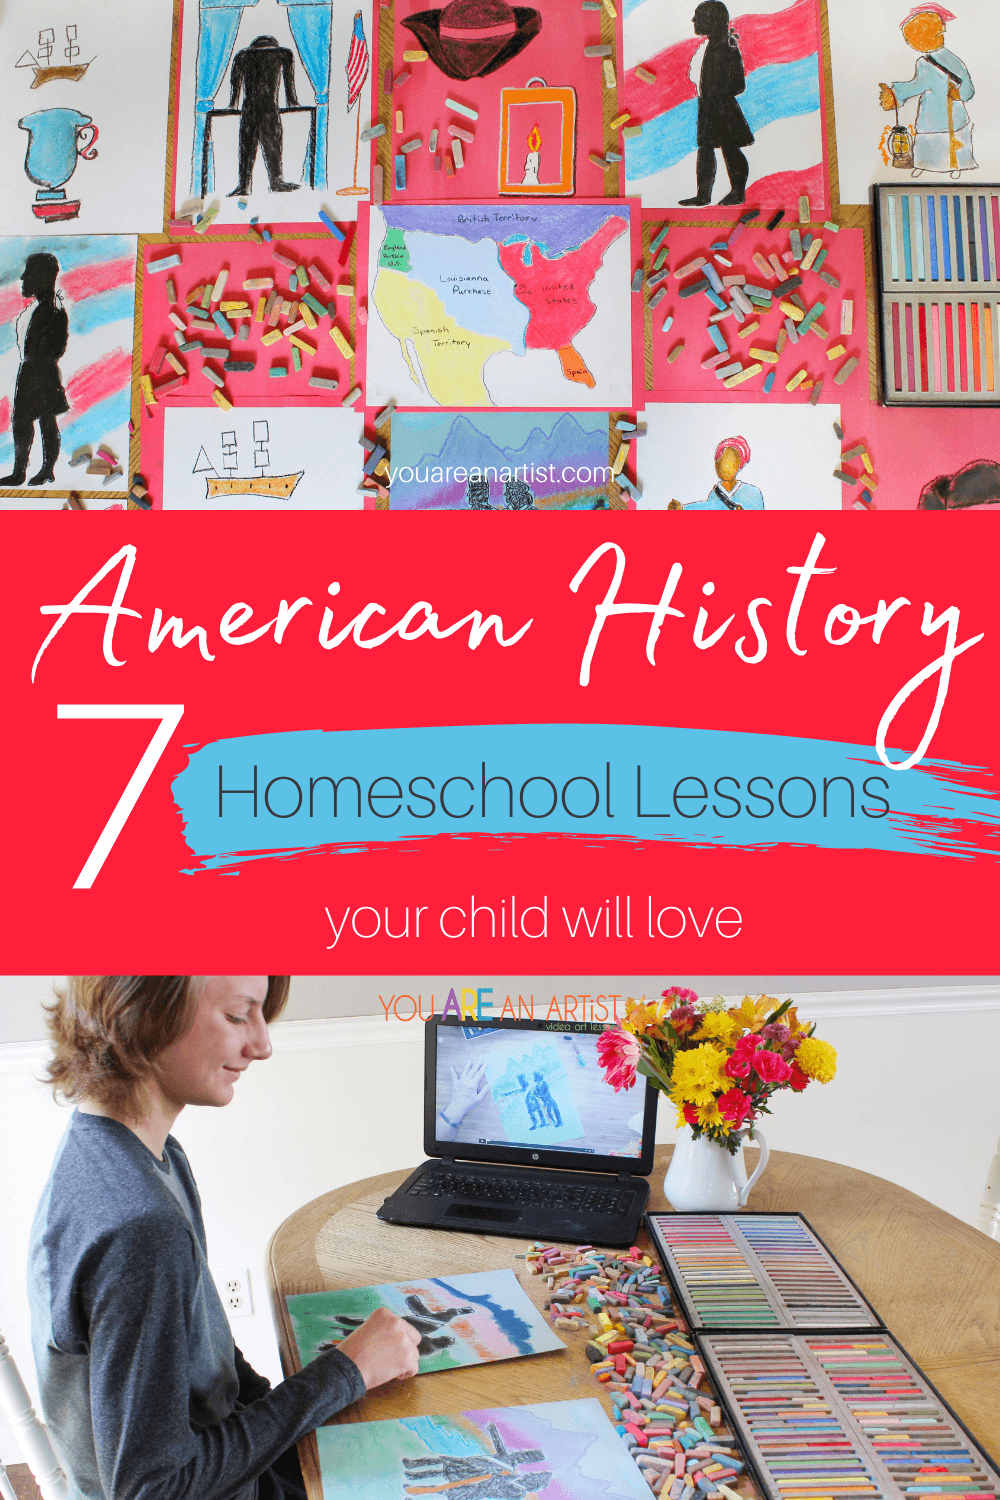 7 American History Homeschool Lessons Your Kids will Love: Are you looking for fun ways to incorporate American history homeschool lessons? Maybe you already have a history curriculum, but you're looking for ways to make it more hands-on and engaging. Chalk pastels may be just what you need to get your kids to fall in love with history!